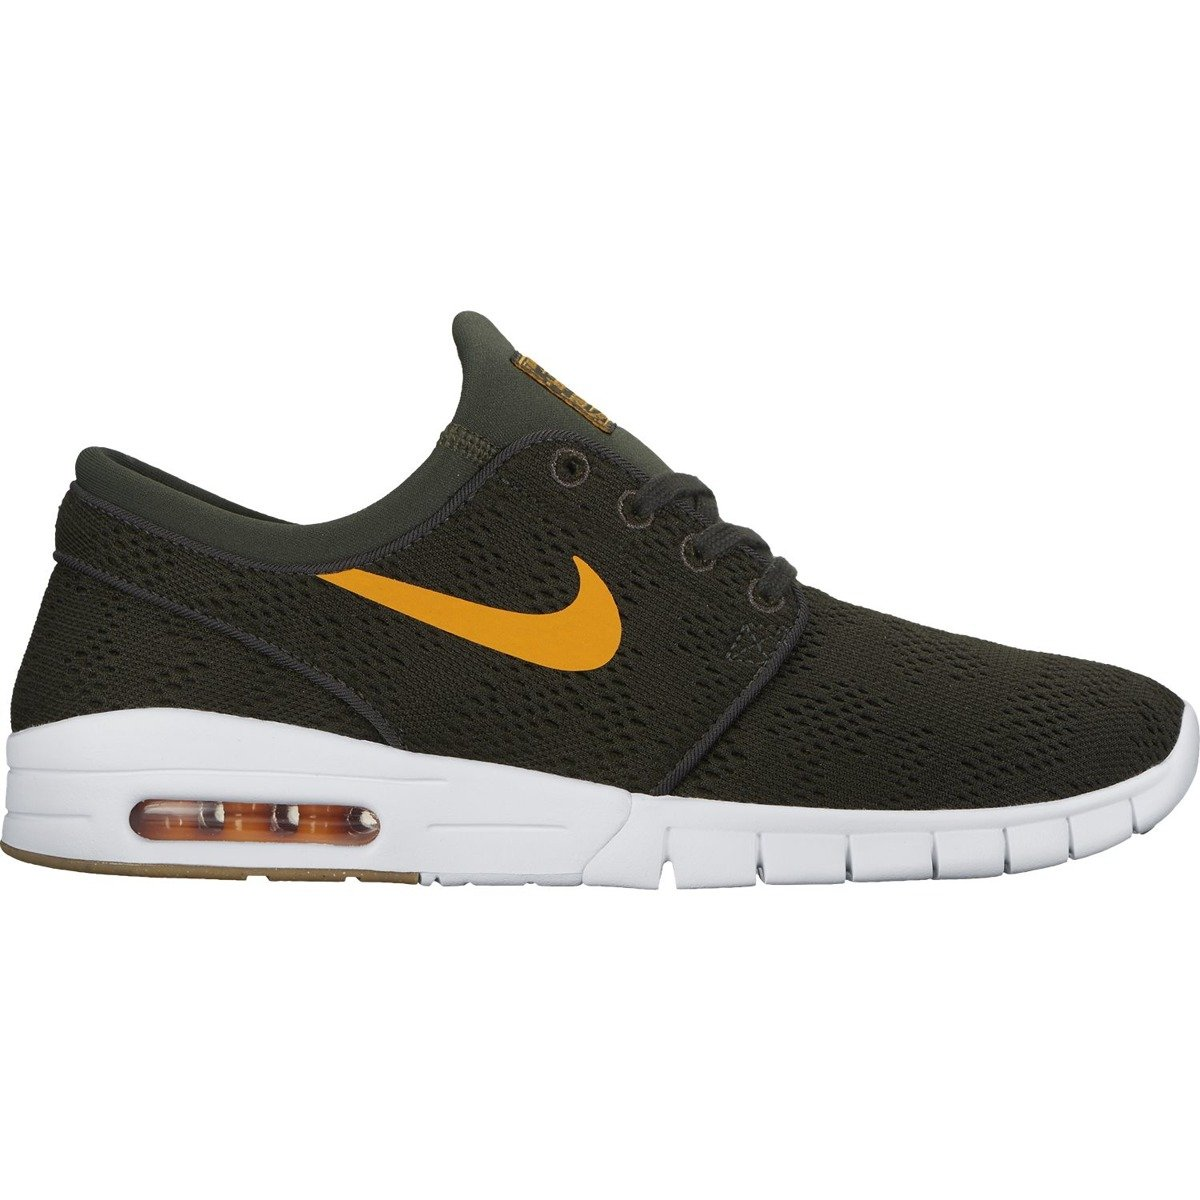 118ad666a170 shoes nike sb stefan janoski max sequoia circuit orange-gum light brown  Click to zoom ...